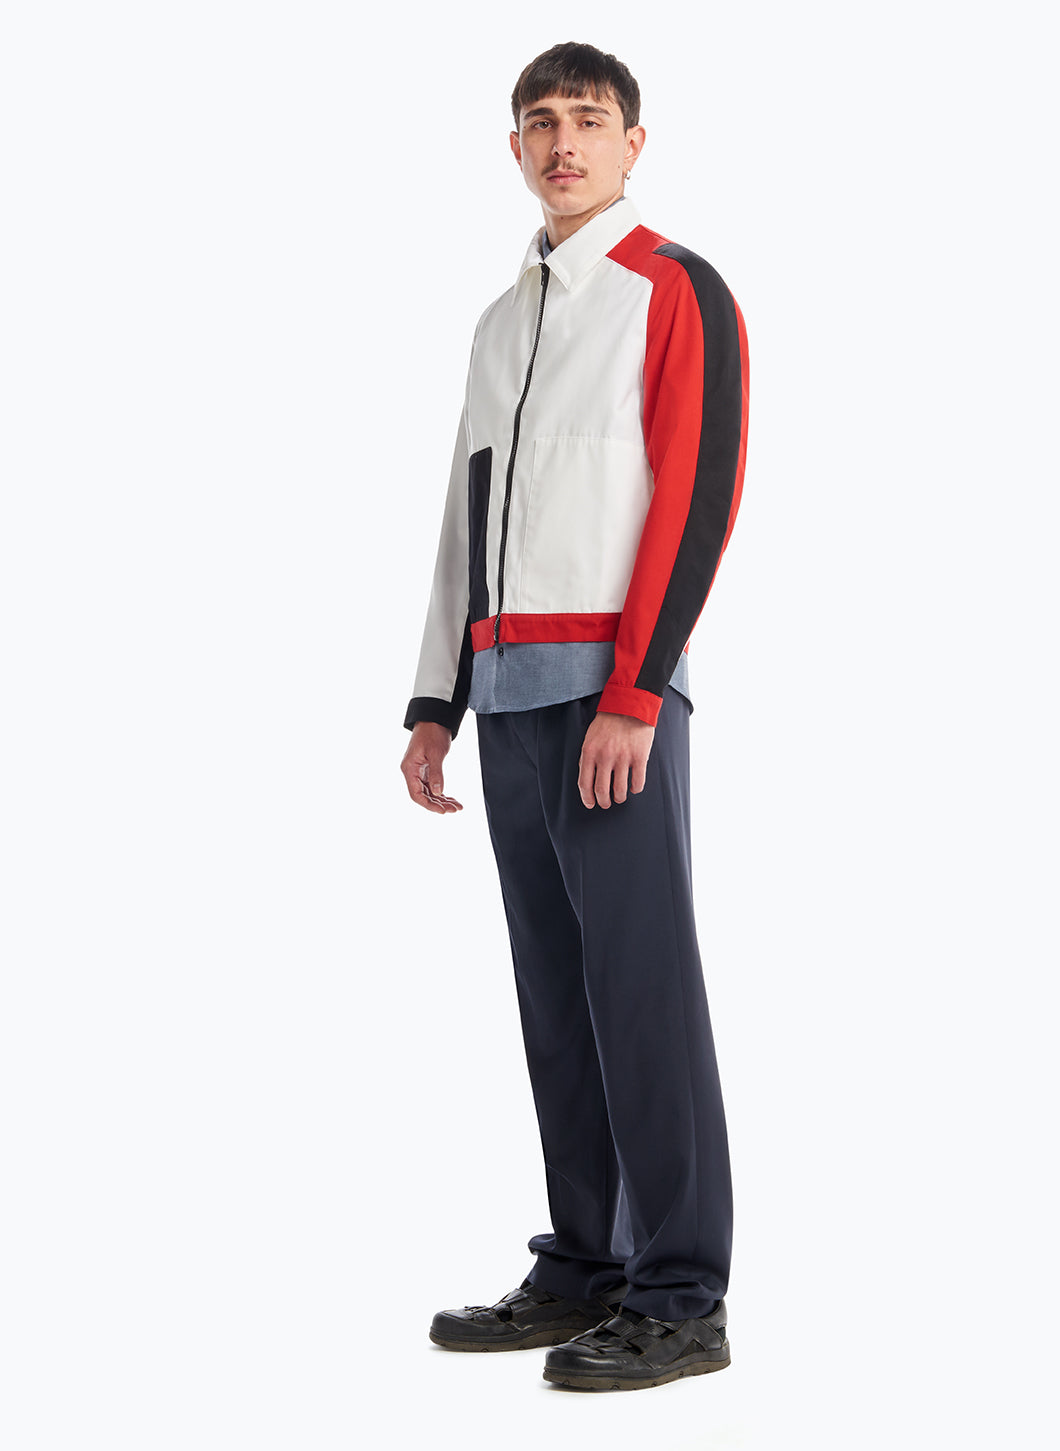 Jacket with Asymmetrical Cuts in Red, Black & White Teflon